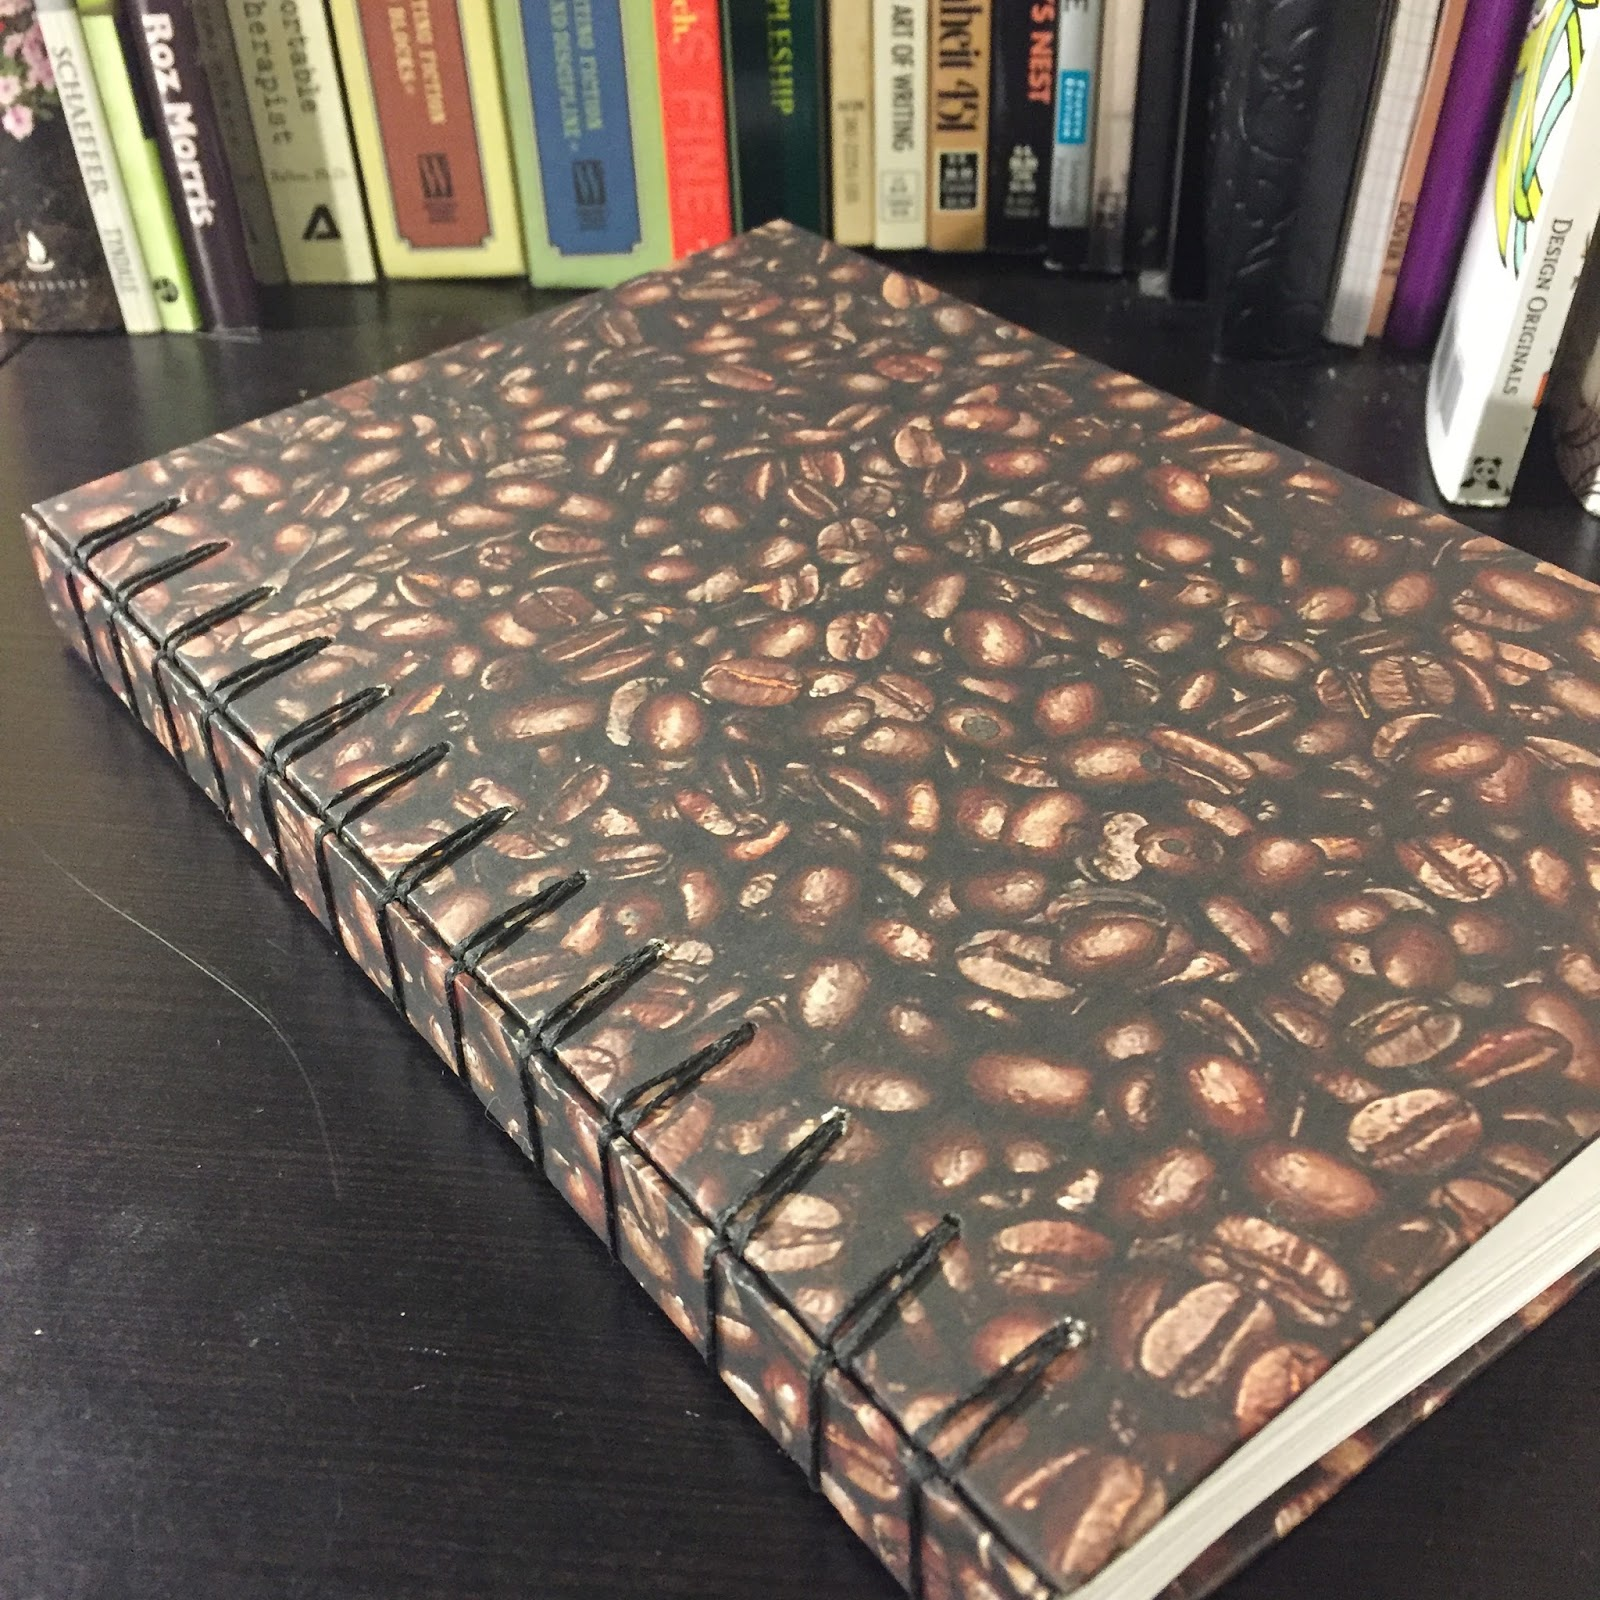 handbound journal with coffee beans on cover on black desk in front of bookshelf